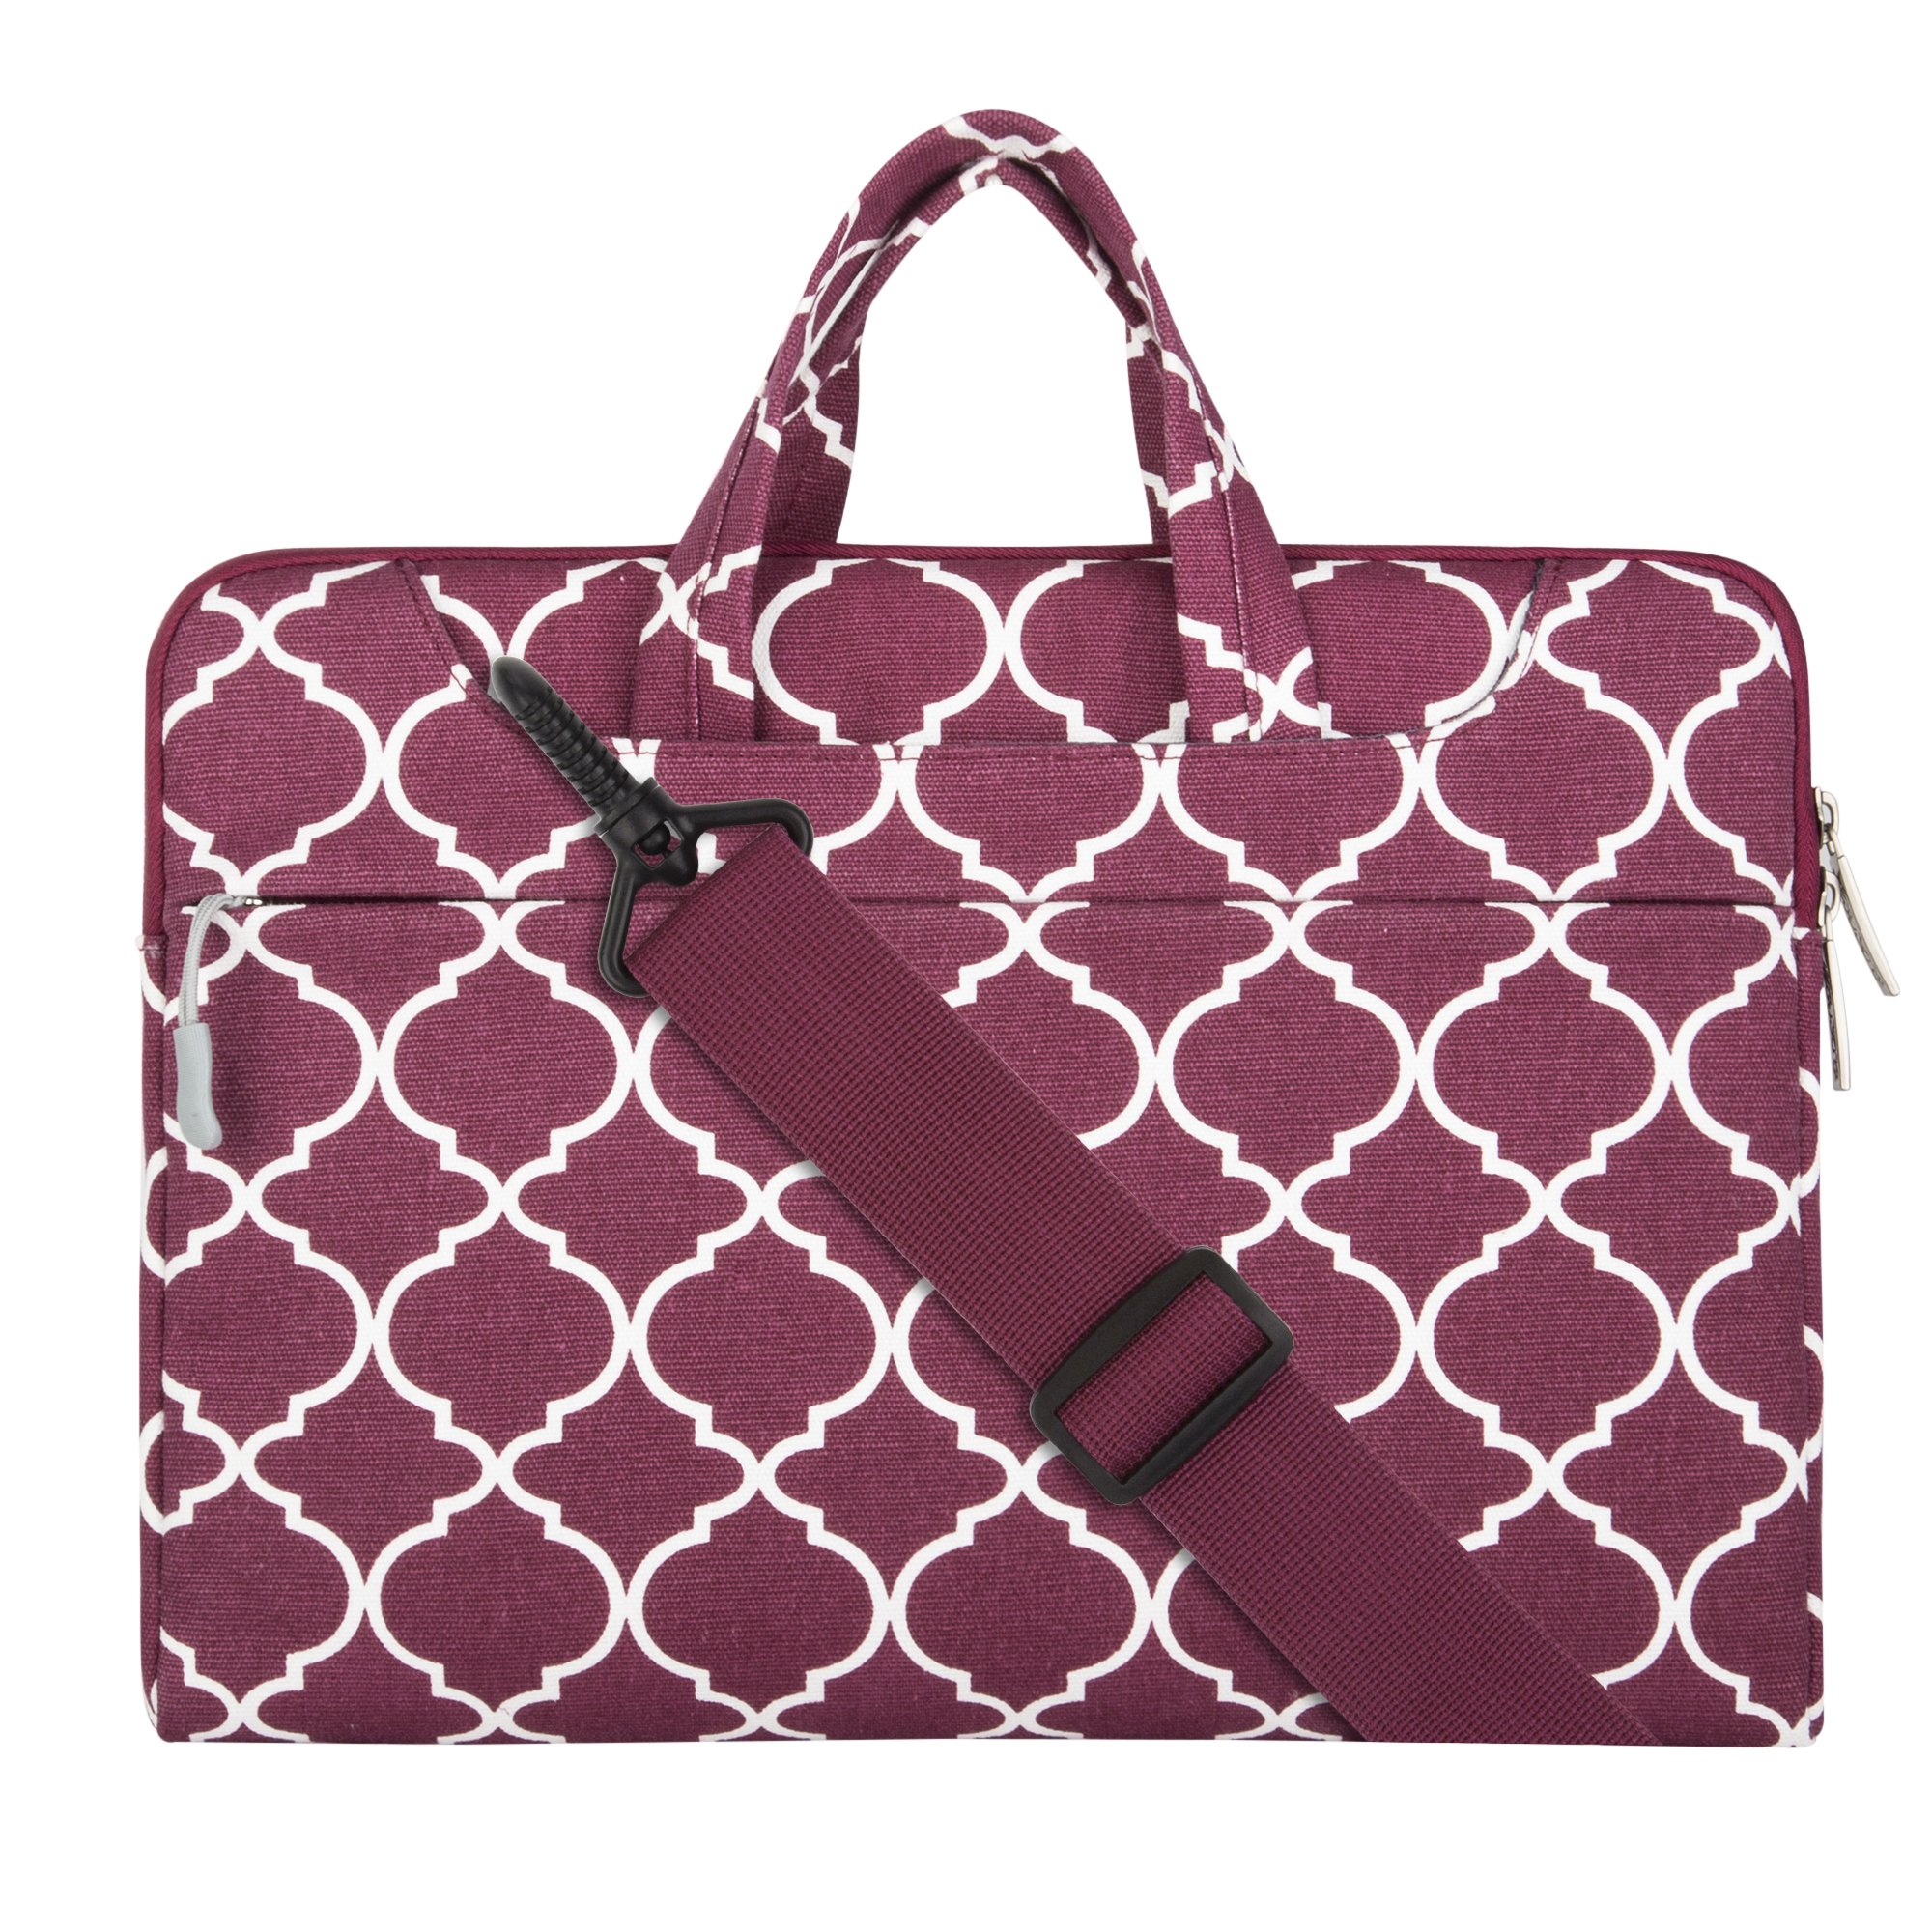 MOSISO Laptop Shoulder Bag Compatible 15-15.6 Inch MacBook Pro, Ultrabook Netbook Tablet, Quatrefoil Canvas Protective Briefcase Carrying Handbag Sleeve Case Cover, Wine Red